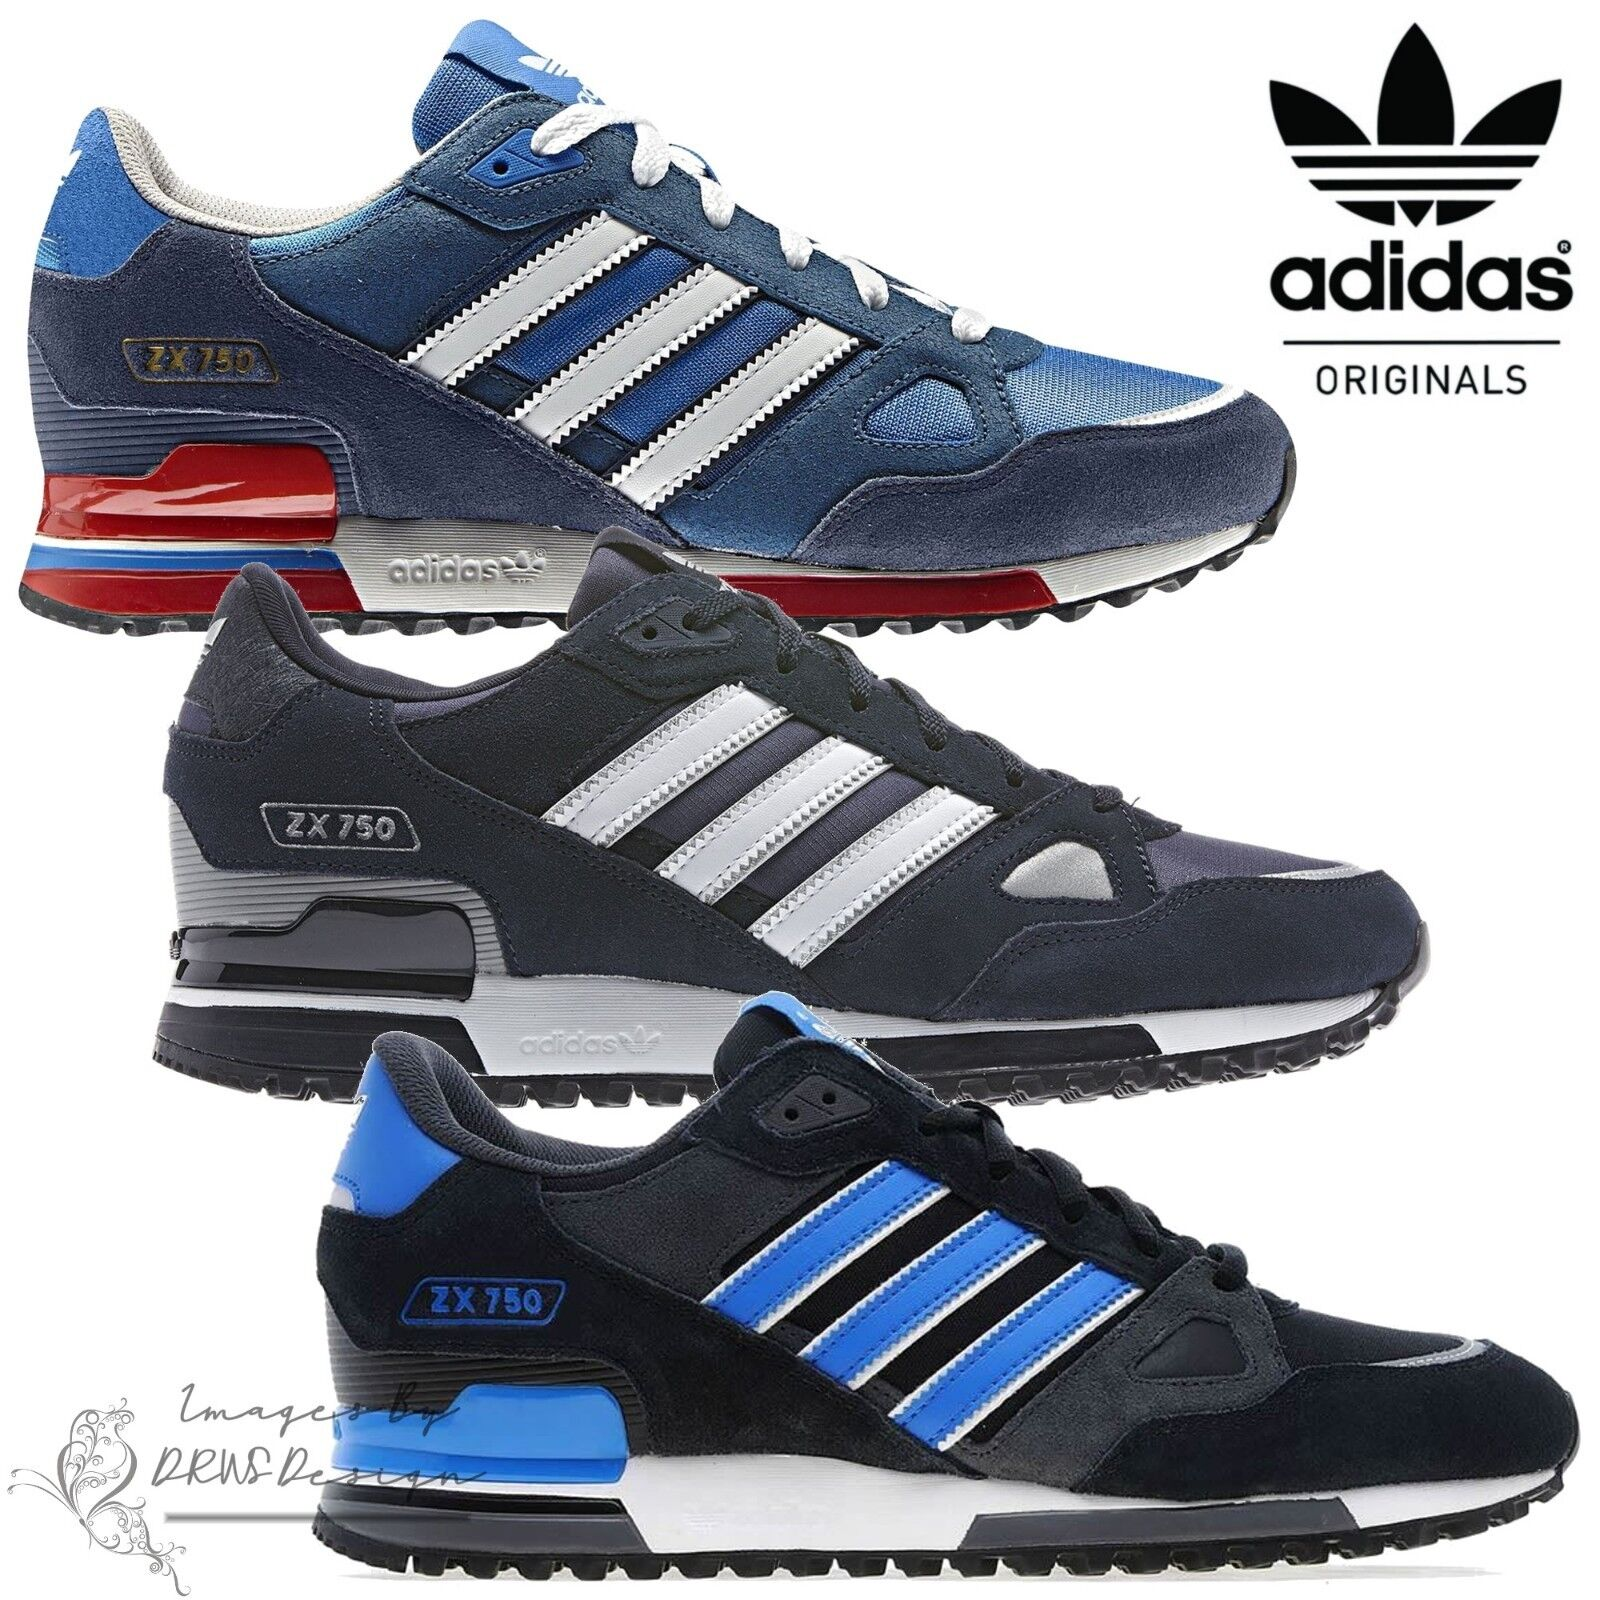 347bad481c34c Adidas Originals ZX 750 Men s Suede Trainers Retro Casual Sports Running  Shoes